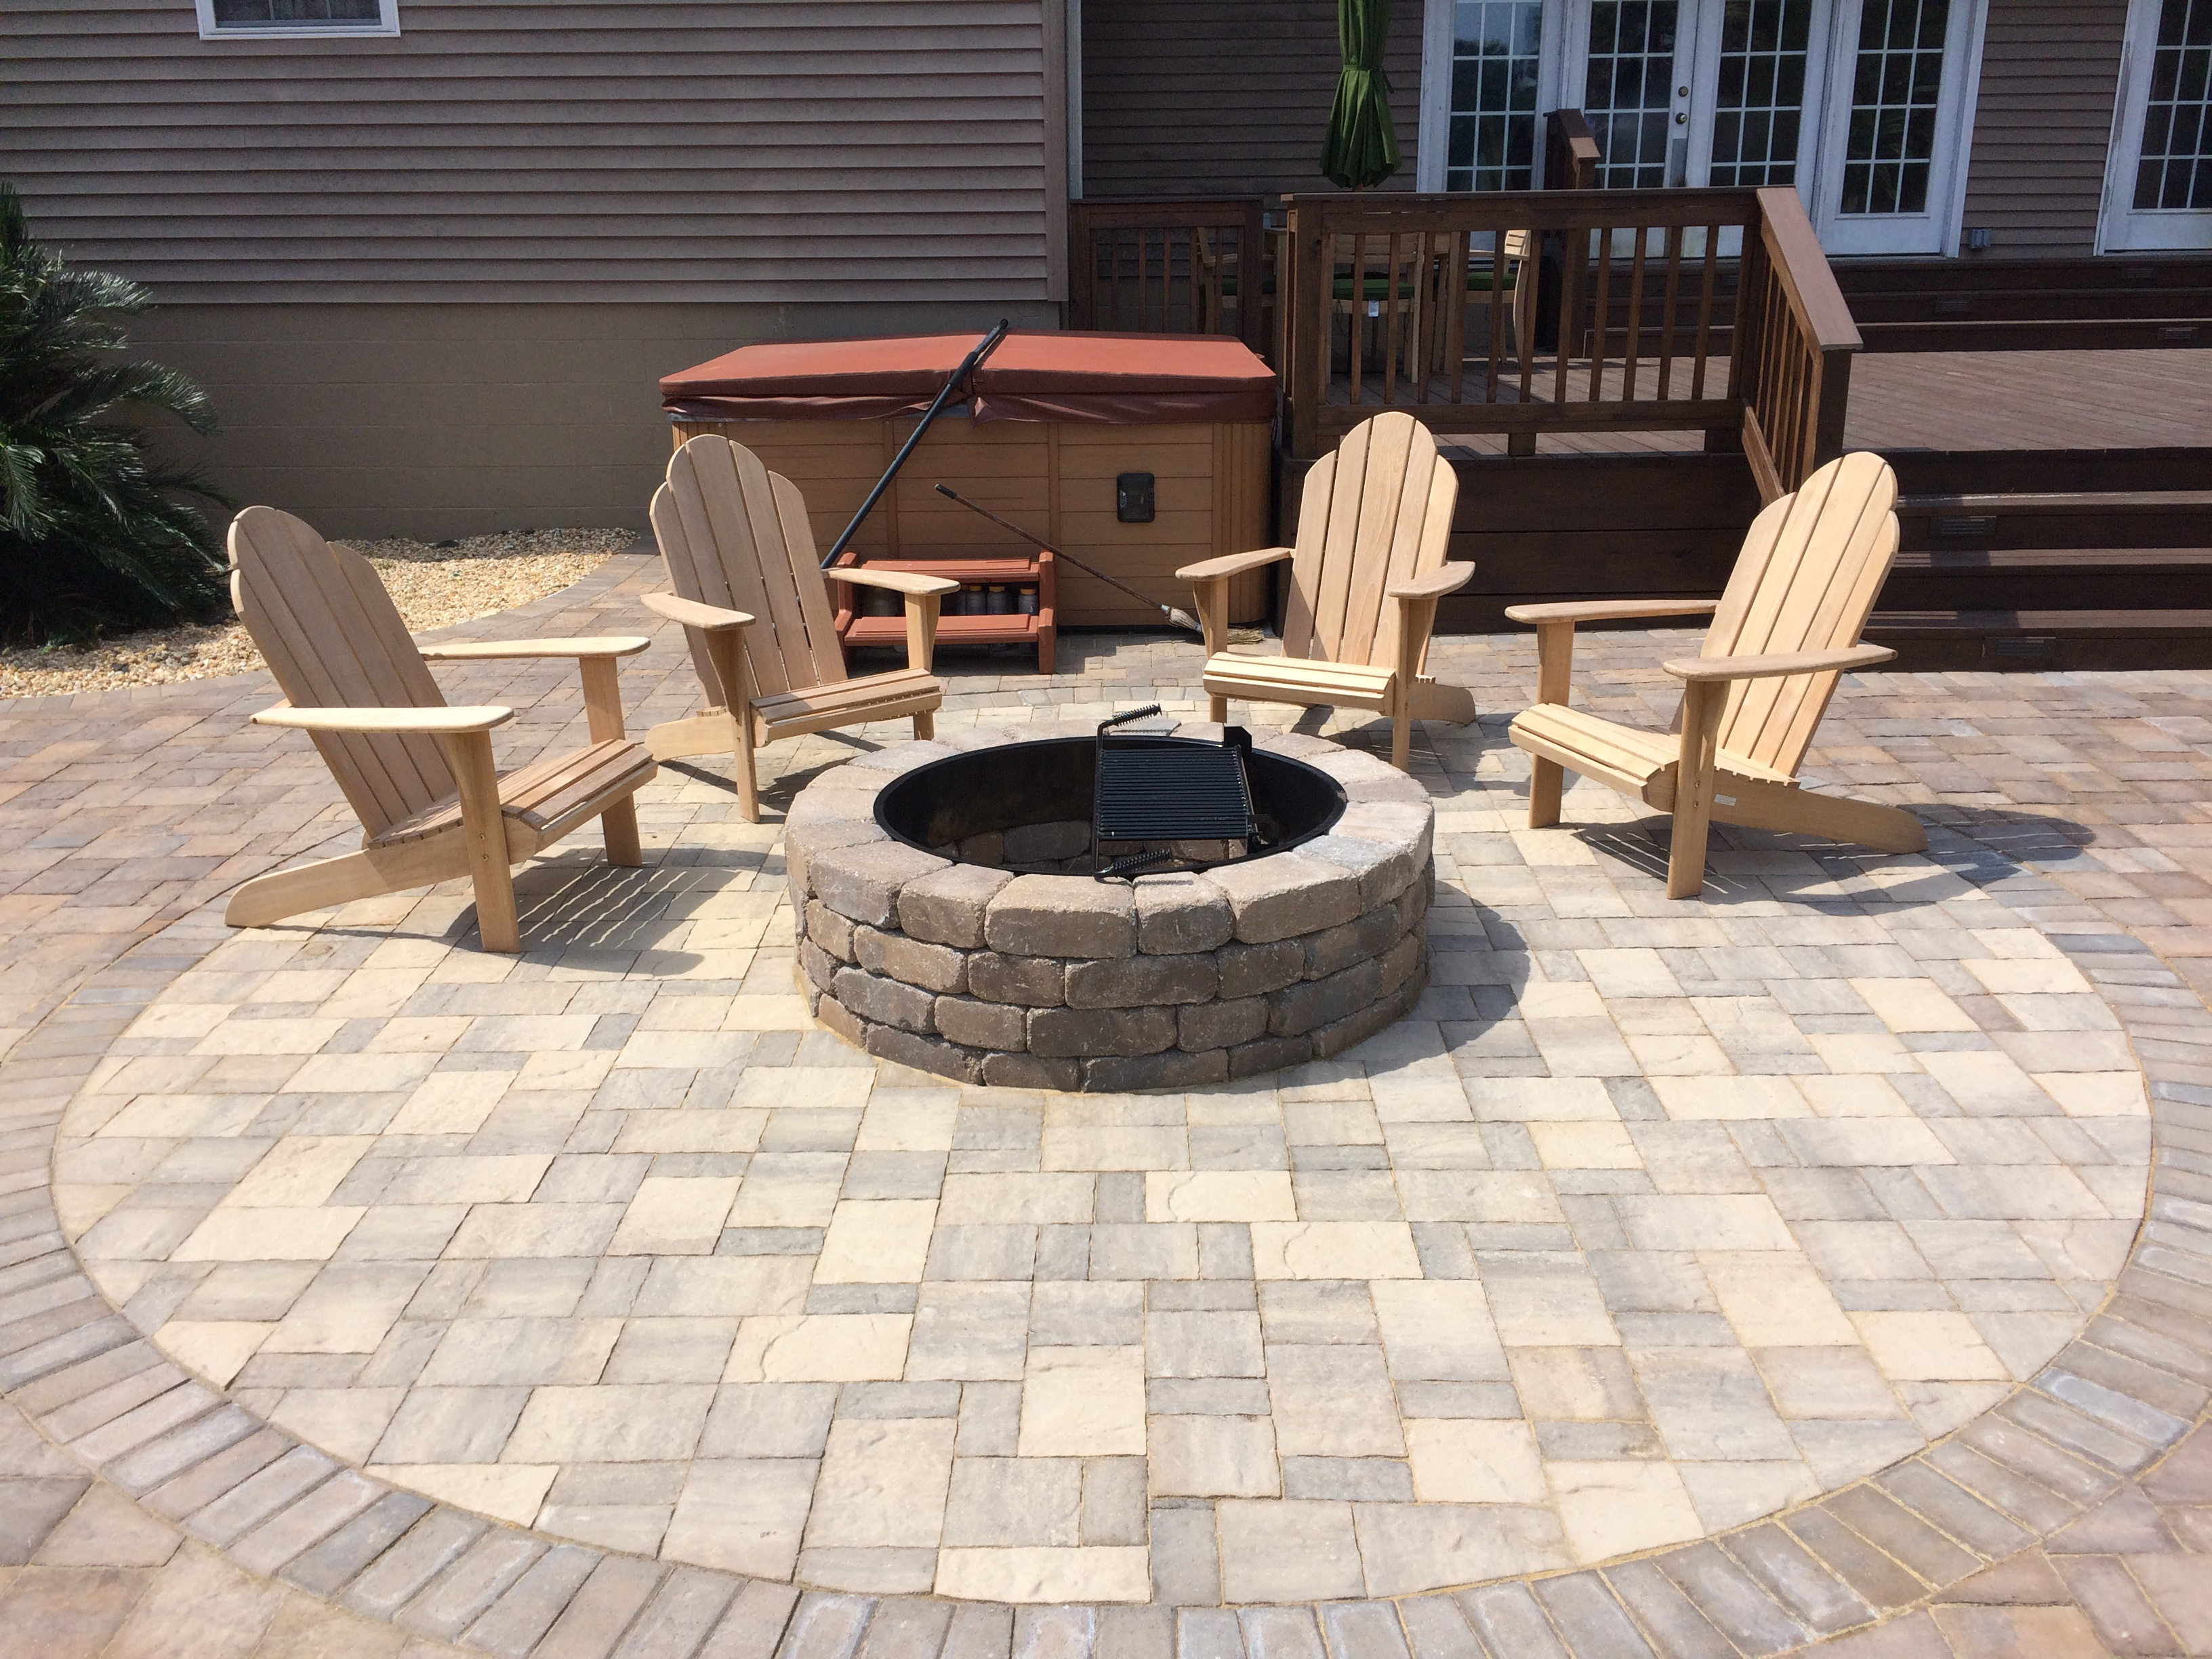 Residential hardscape contractor portfolio- fire pit